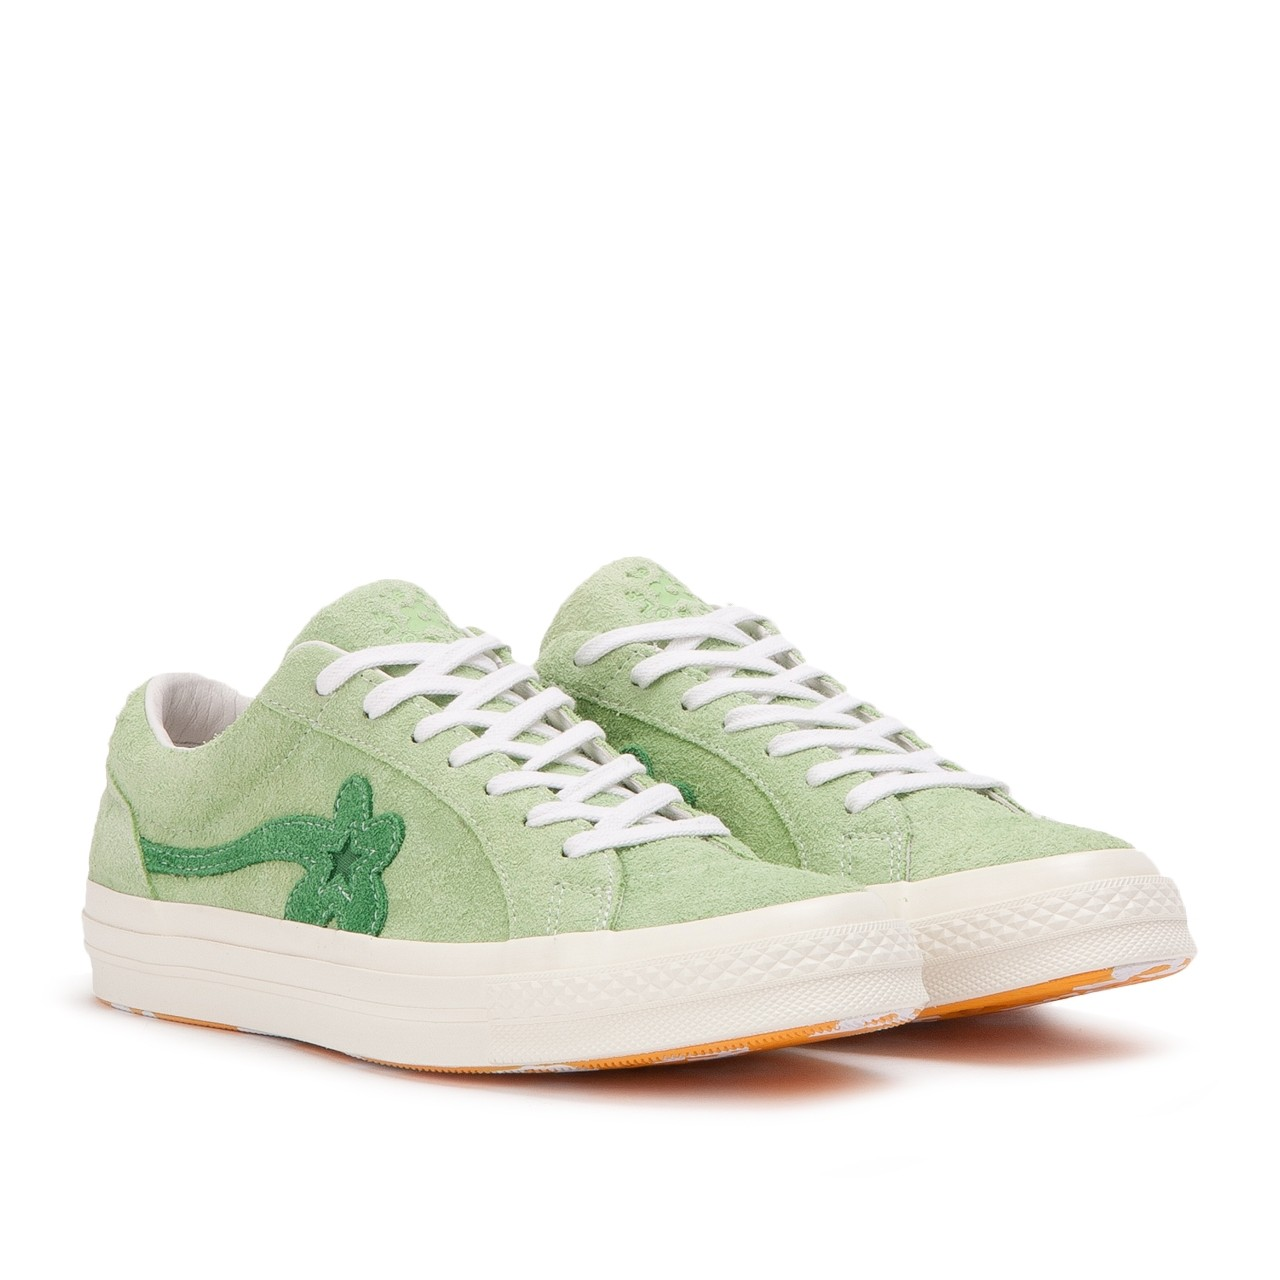 Converse Converse One Star x Golf le Fleur Jade Lime Green Size 9 - Low-Top  Sneakers for Sale - Grailed ab90862b9